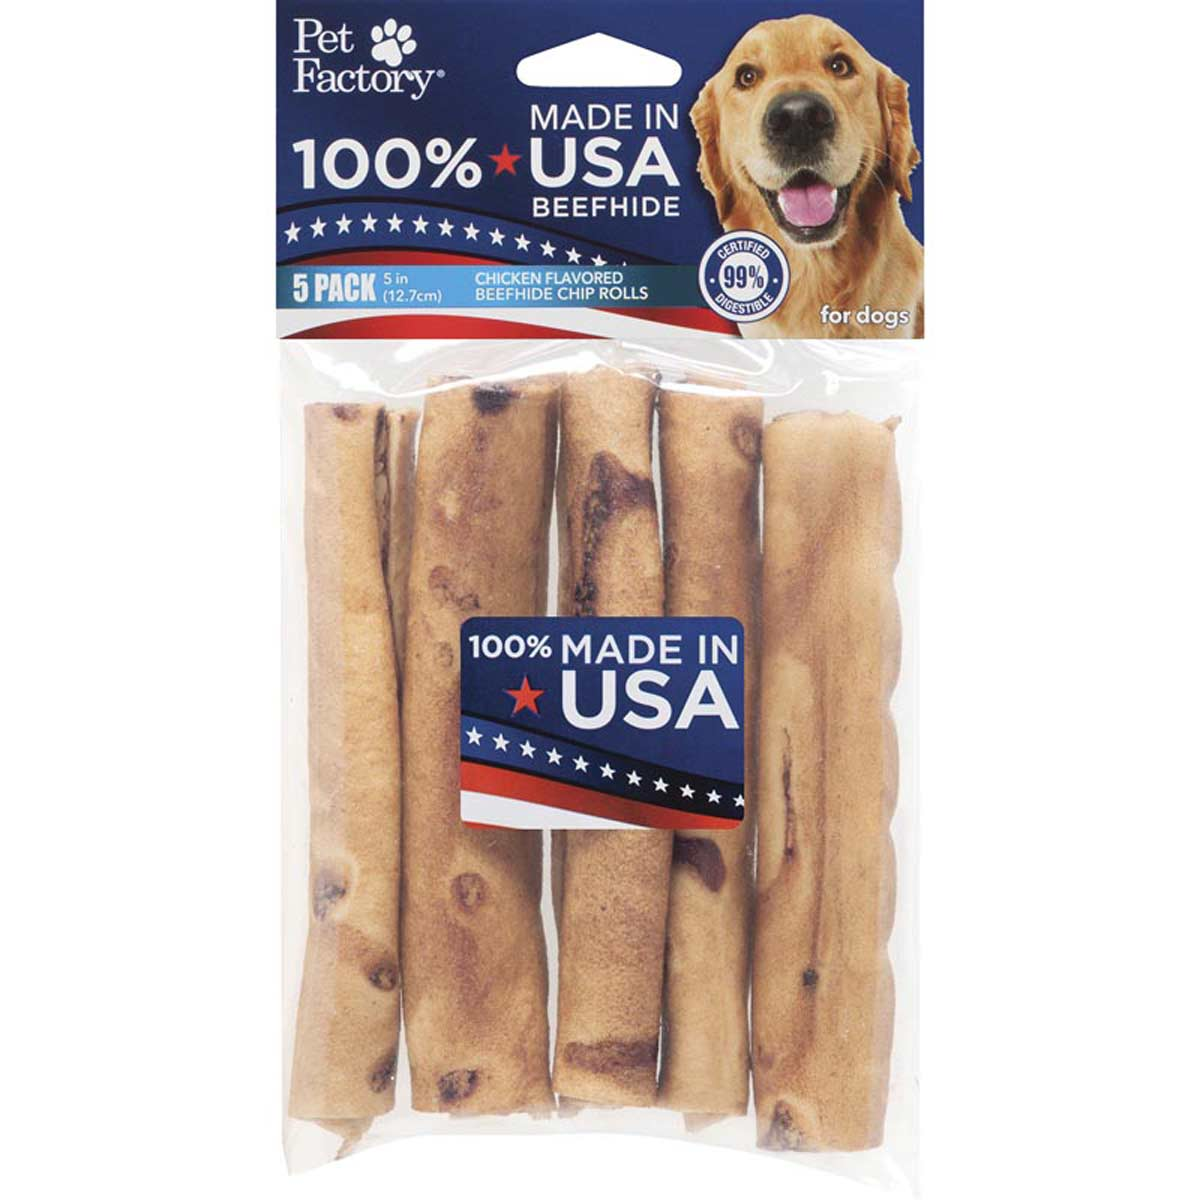 5 Pack of Pet Factory 5 inch Chicken Rawhide Rolls for Dogs